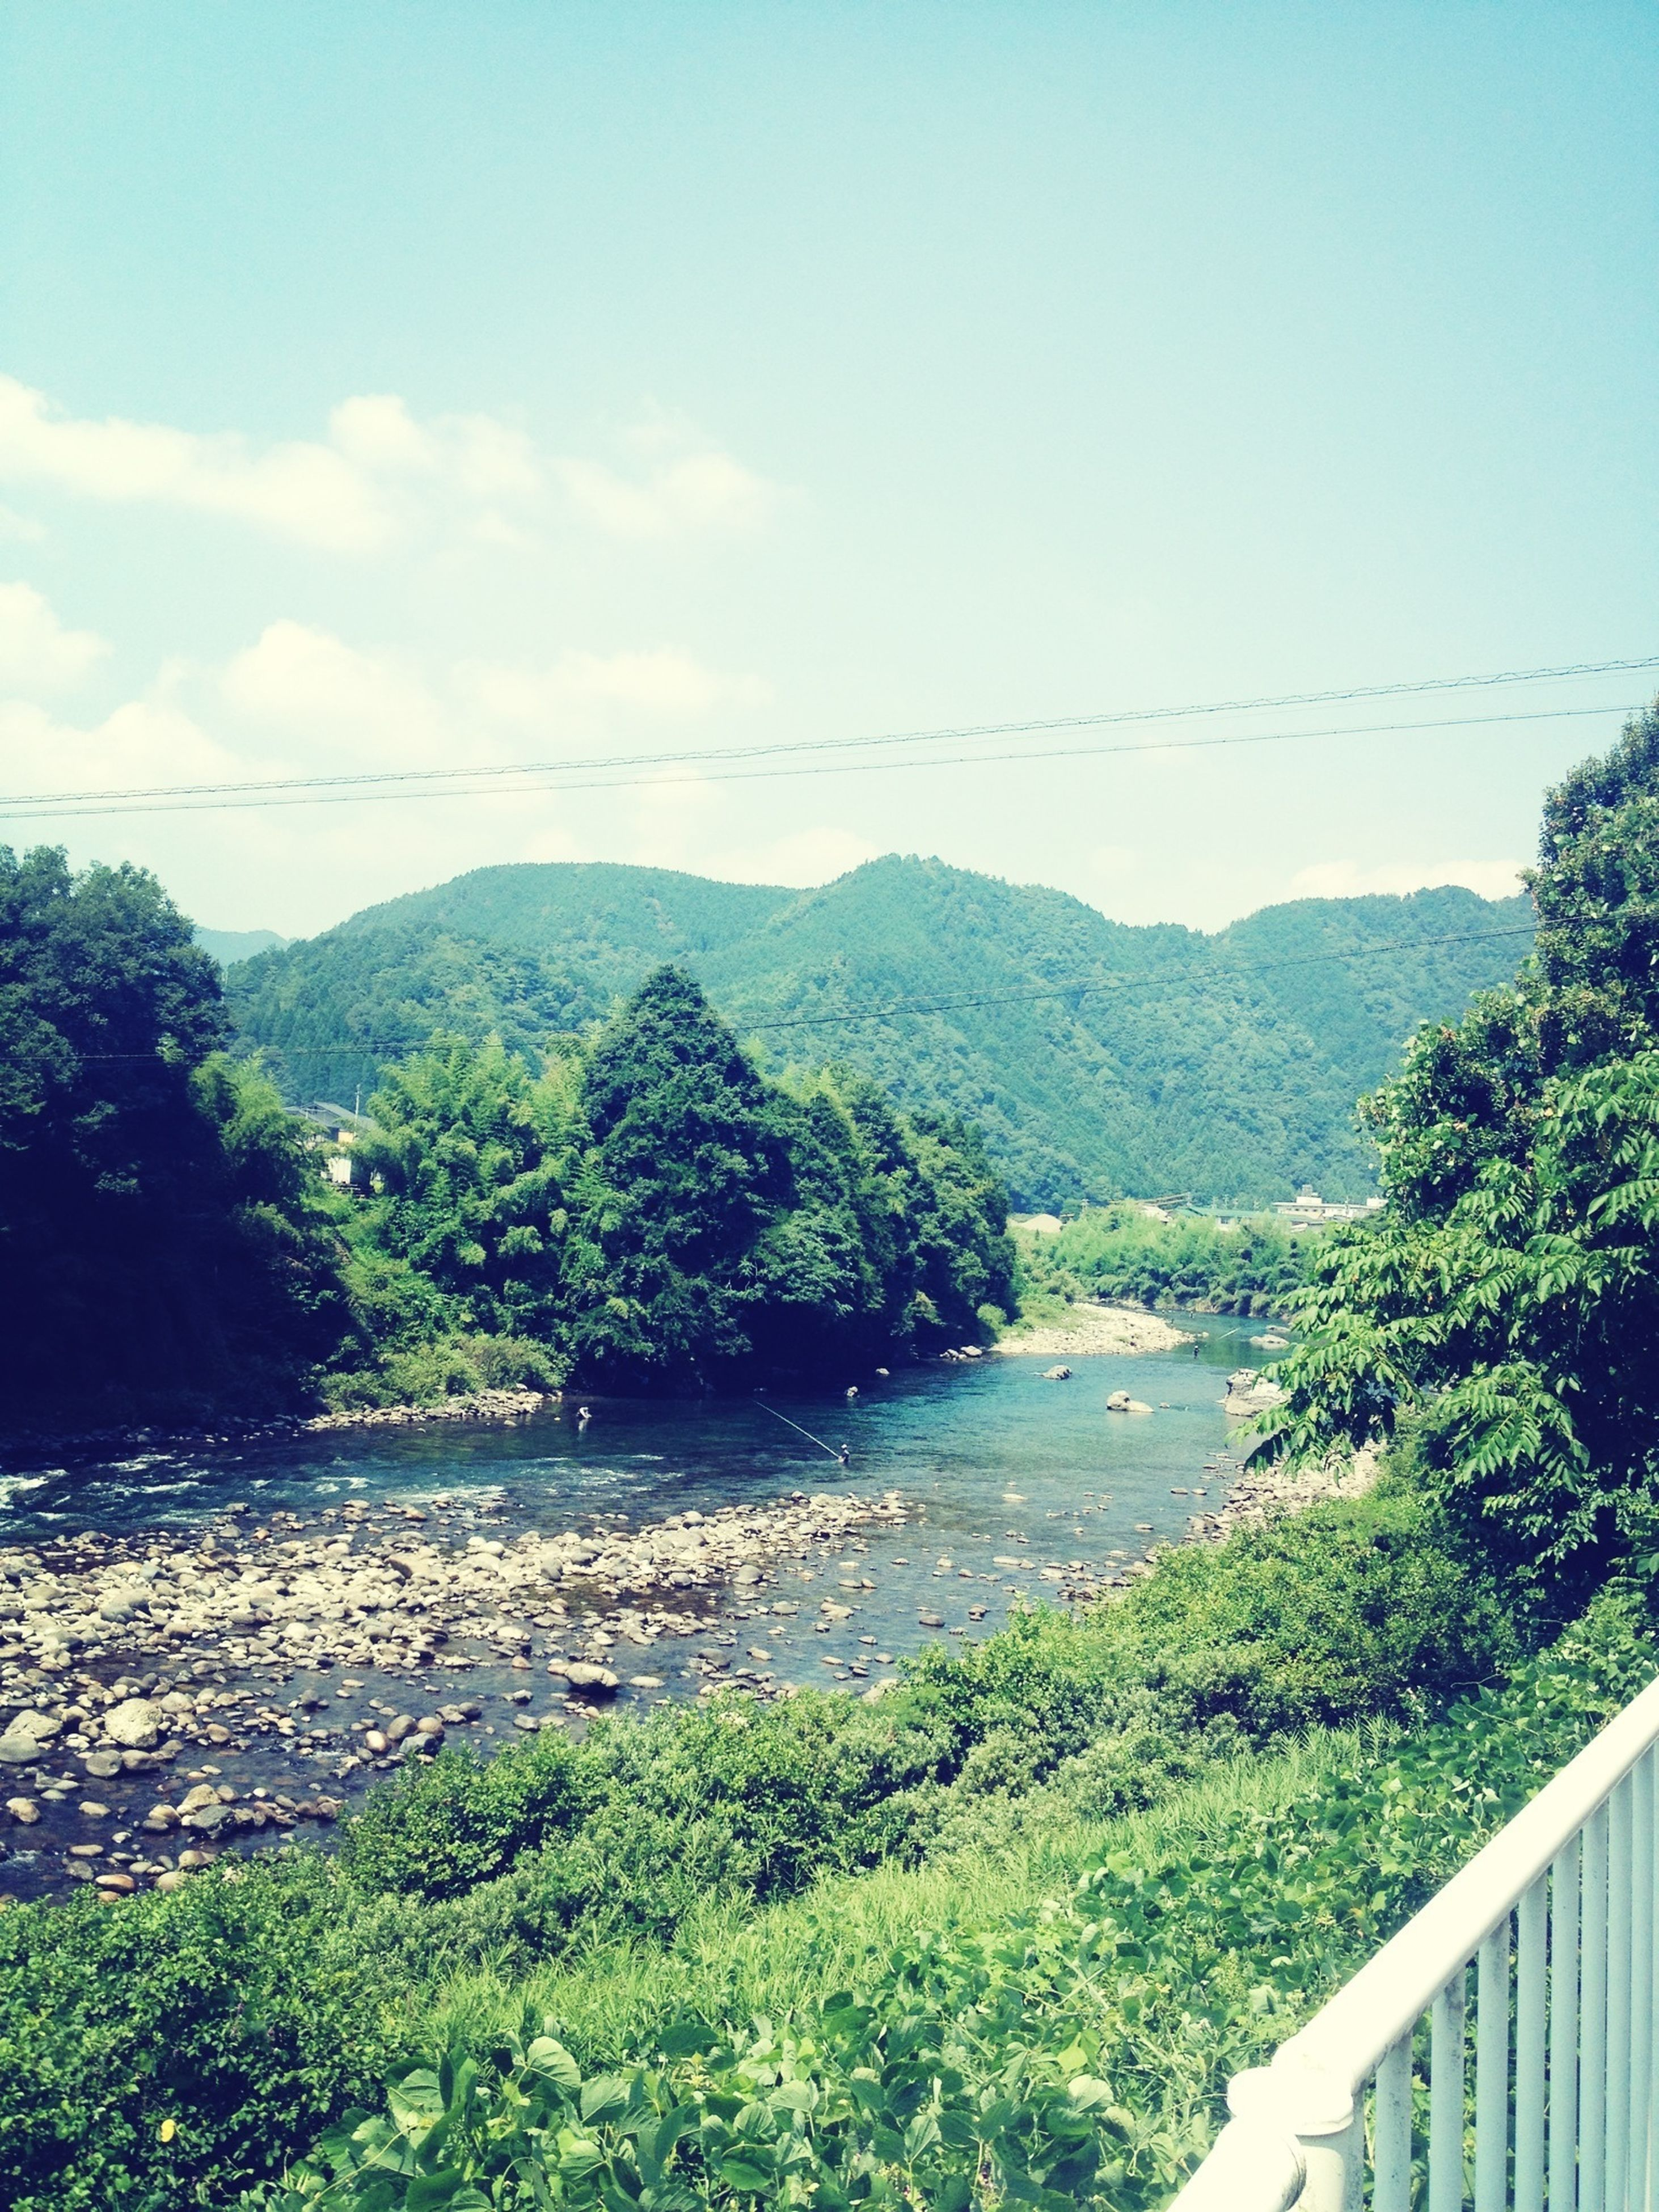 mountain, tranquil scene, scenics, sky, tranquility, mountain range, tree, water, beauty in nature, nature, landscape, plant, railing, river, green color, growth, non-urban scene, connection, idyllic, hill